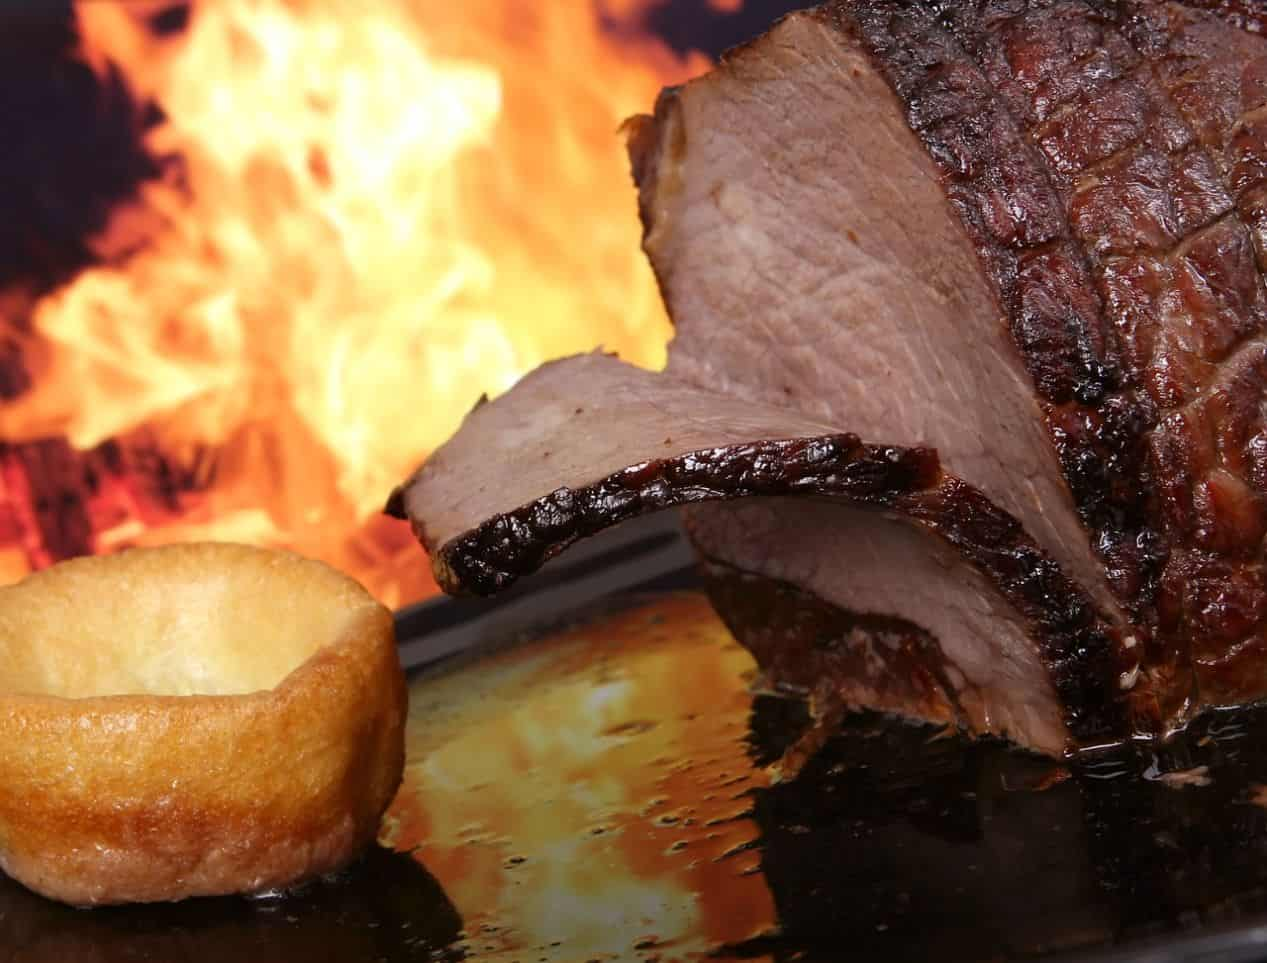 BBQ beef and Yorkshire pudding in front of open flame